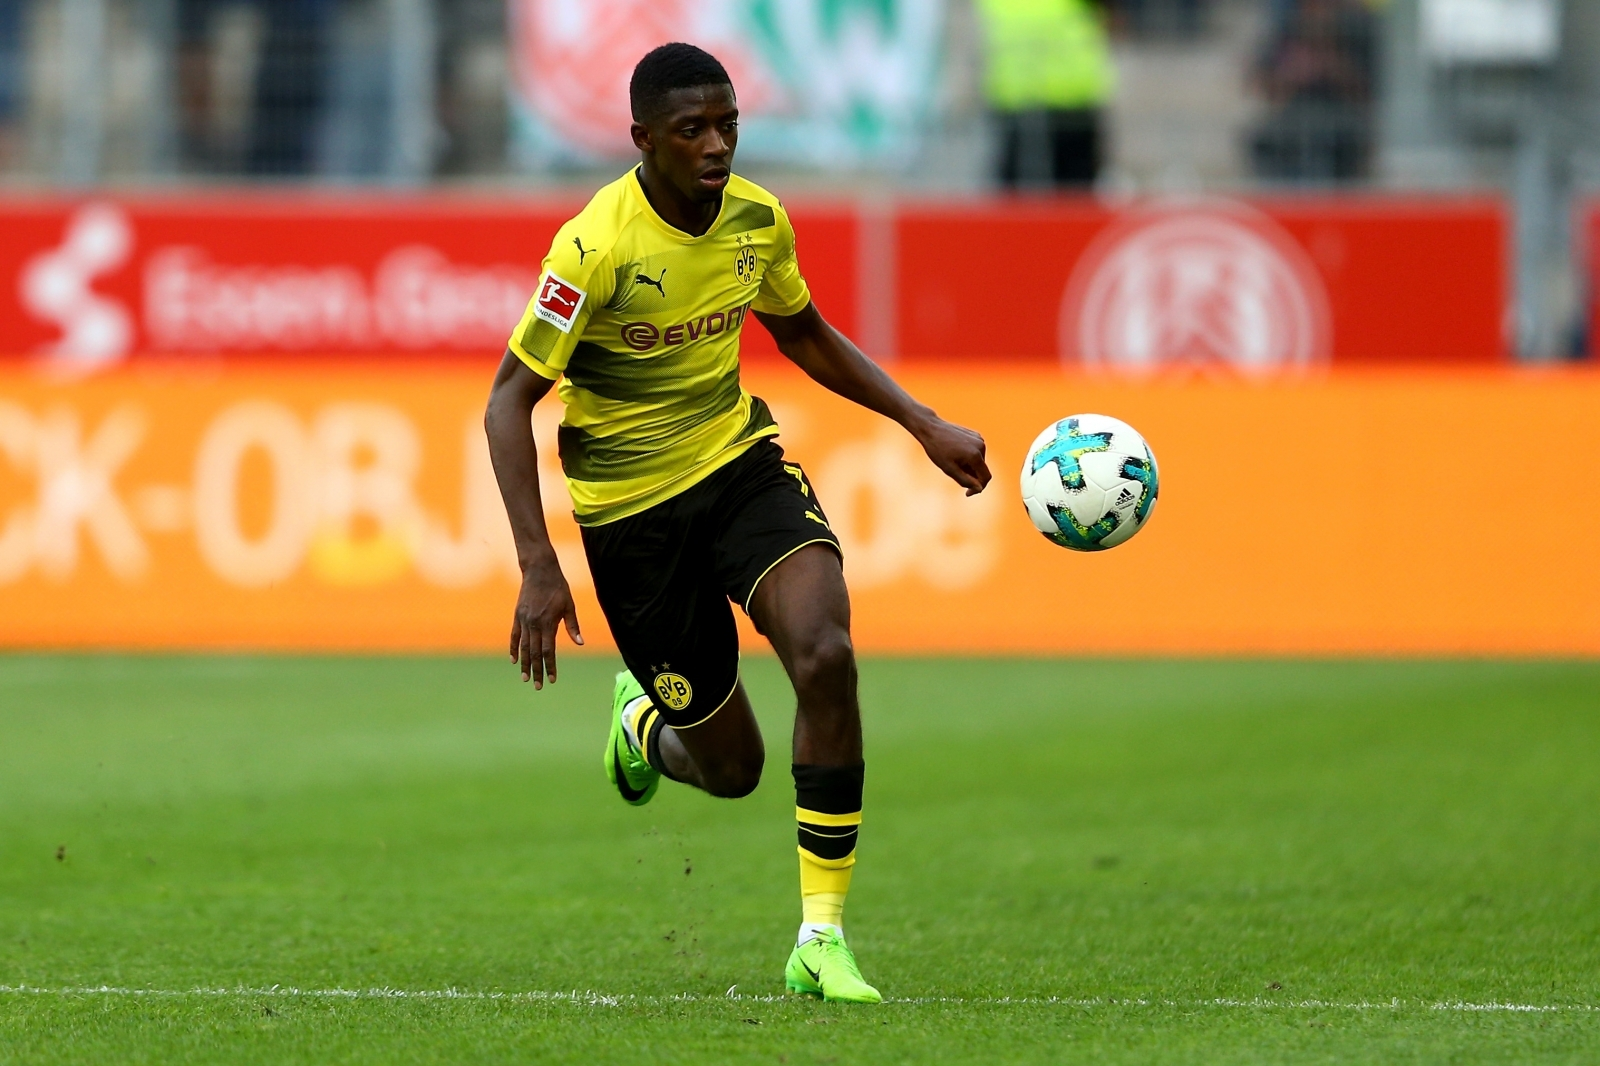 Ousmane Dembele AWOL from Borussia Dortmund training as Barcelona